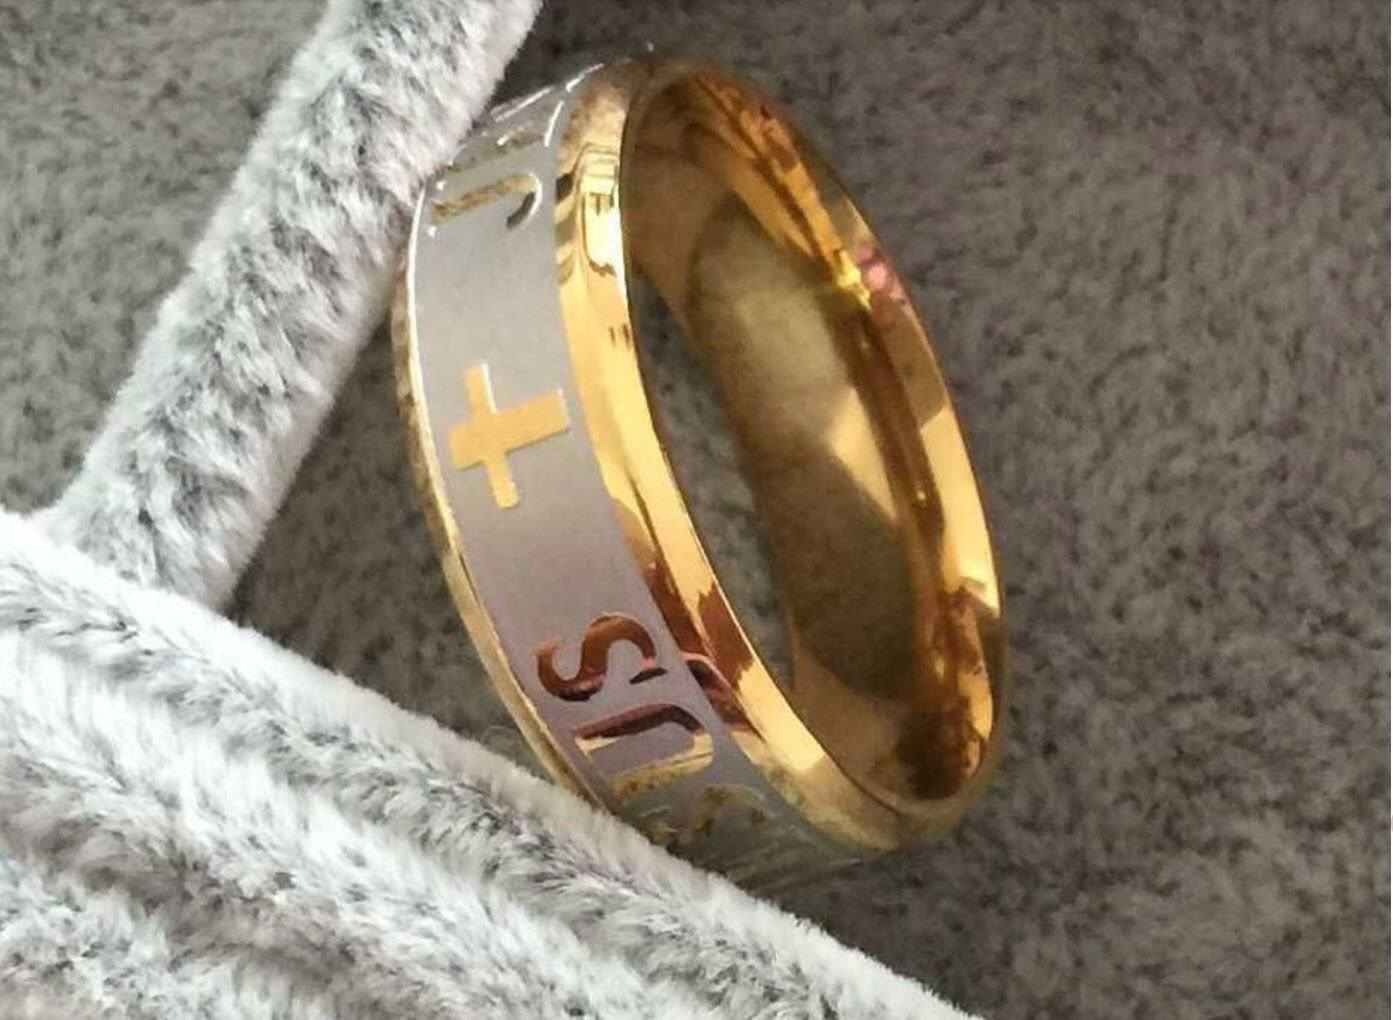 18K Gold & Silver Jesus Ring - Special Design Jewelry - 2